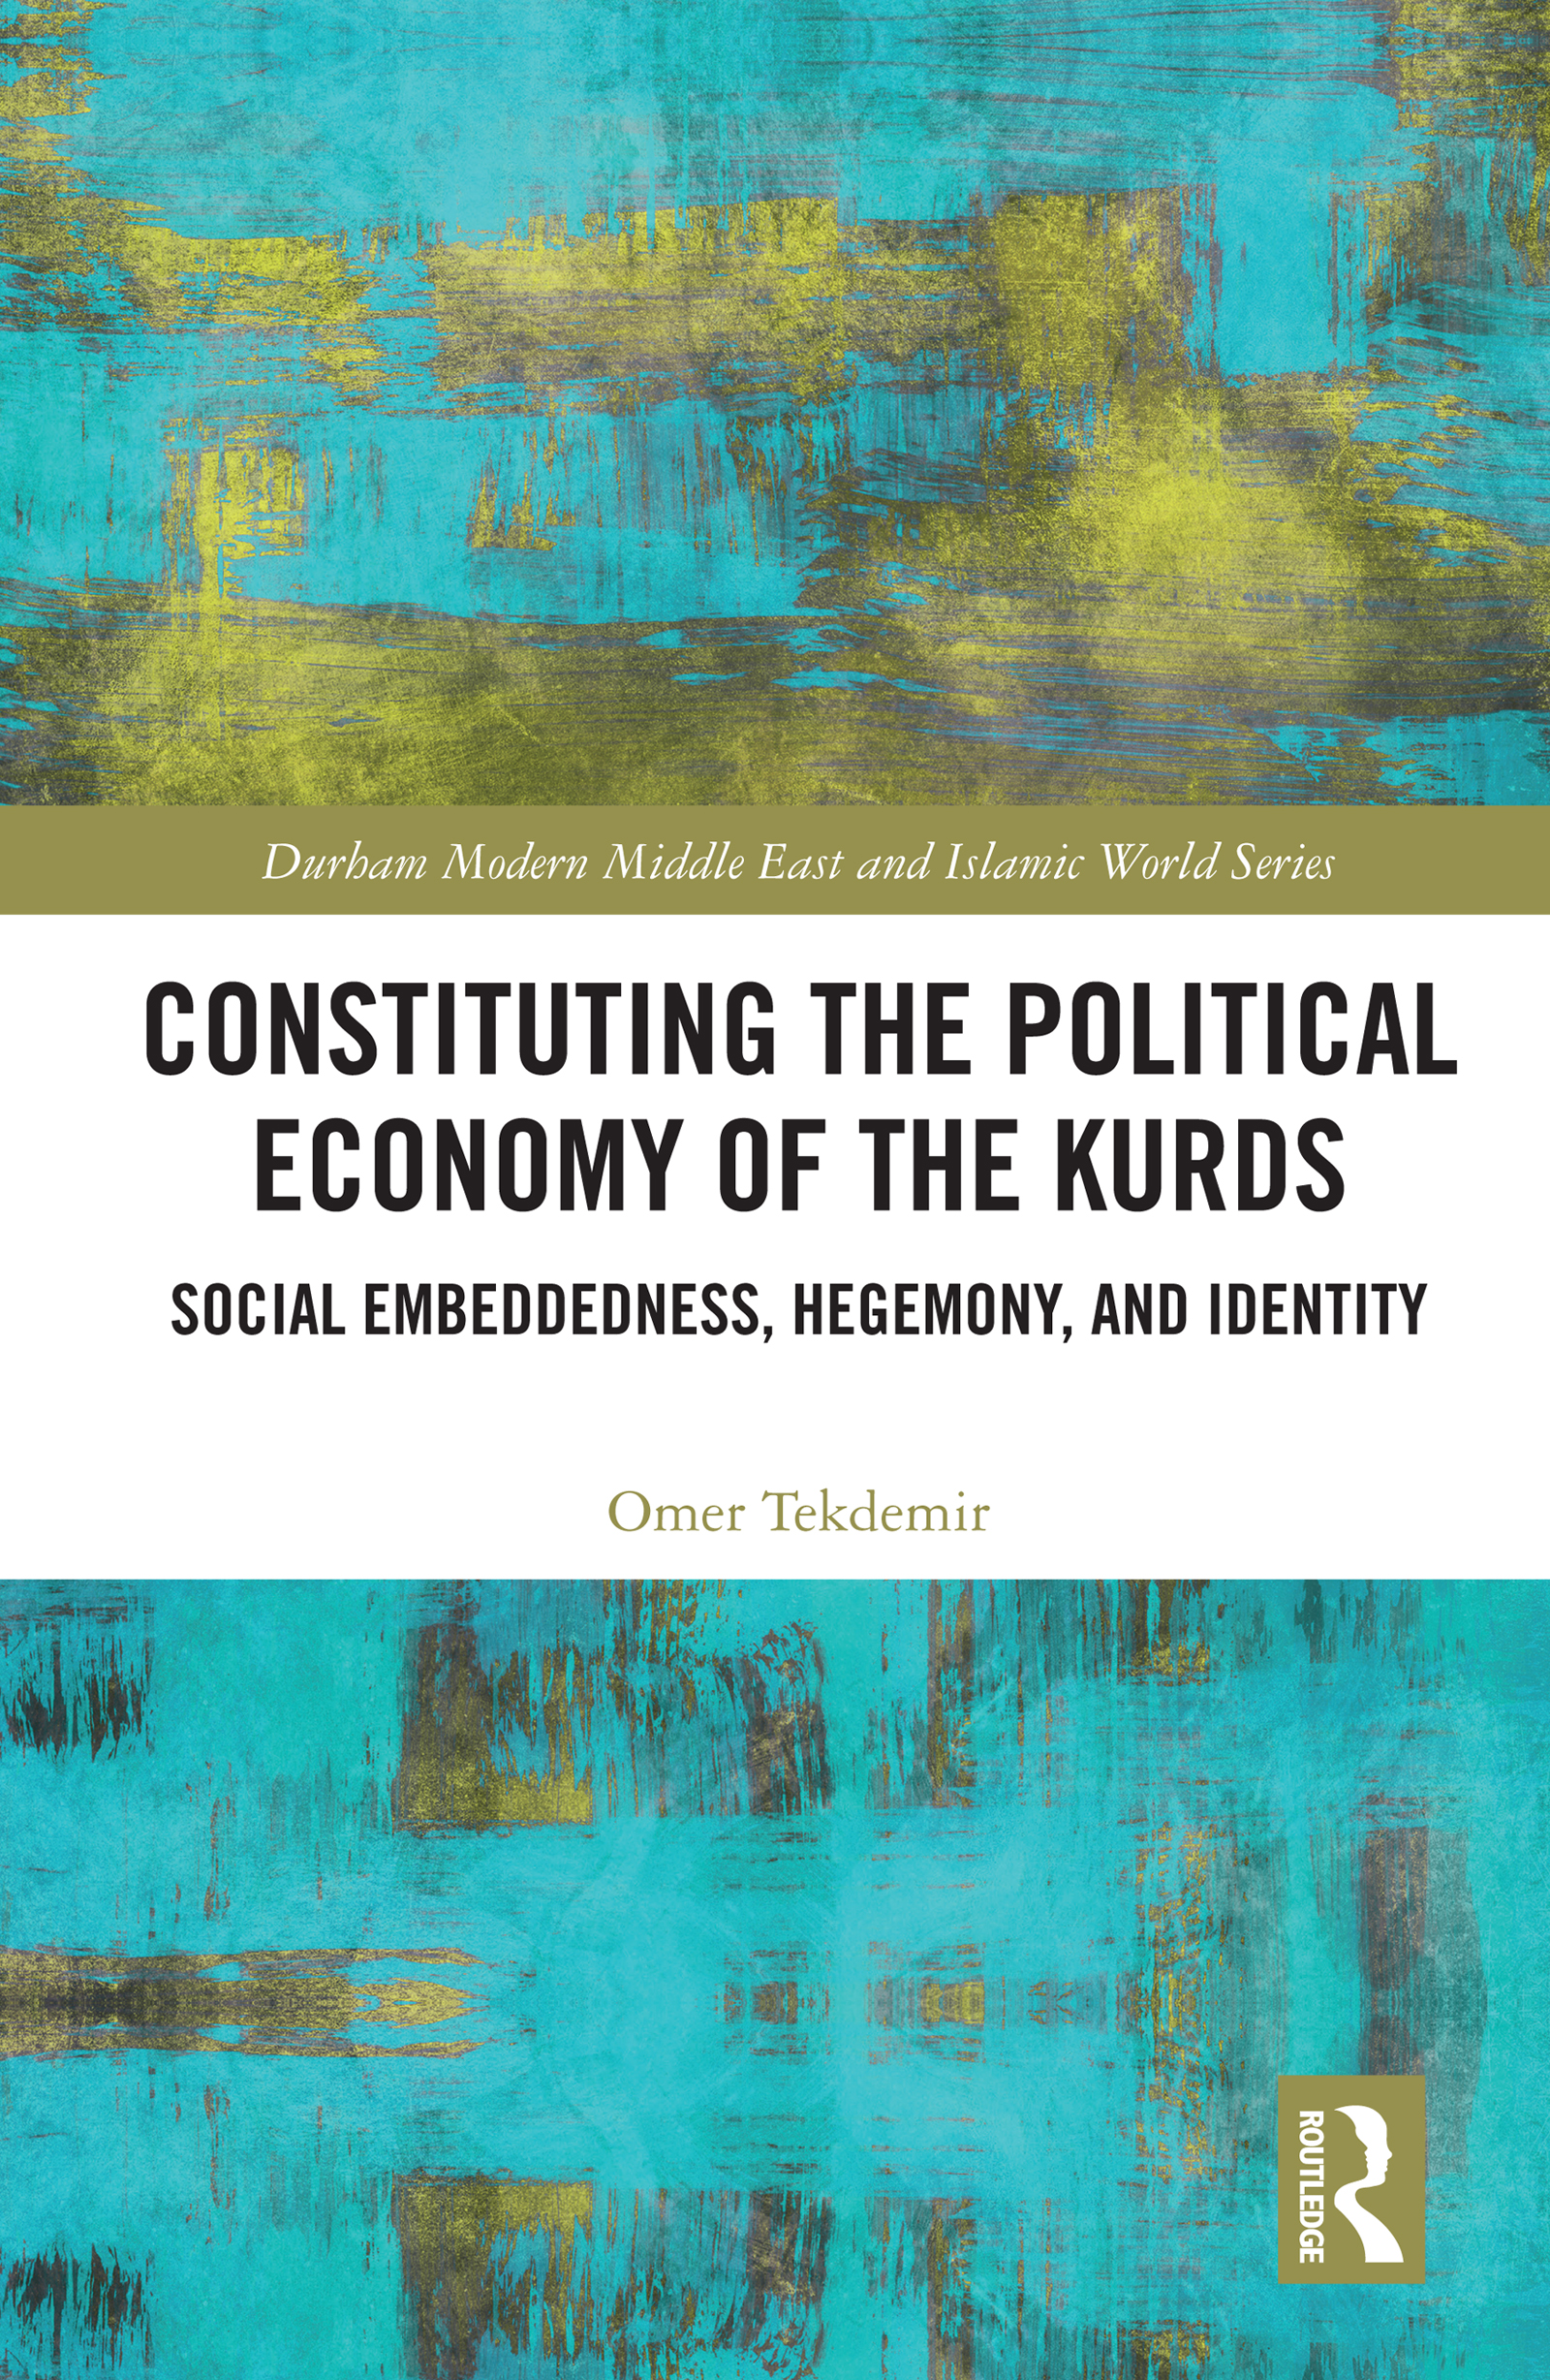 Constituting the Political Economy of the Kurds